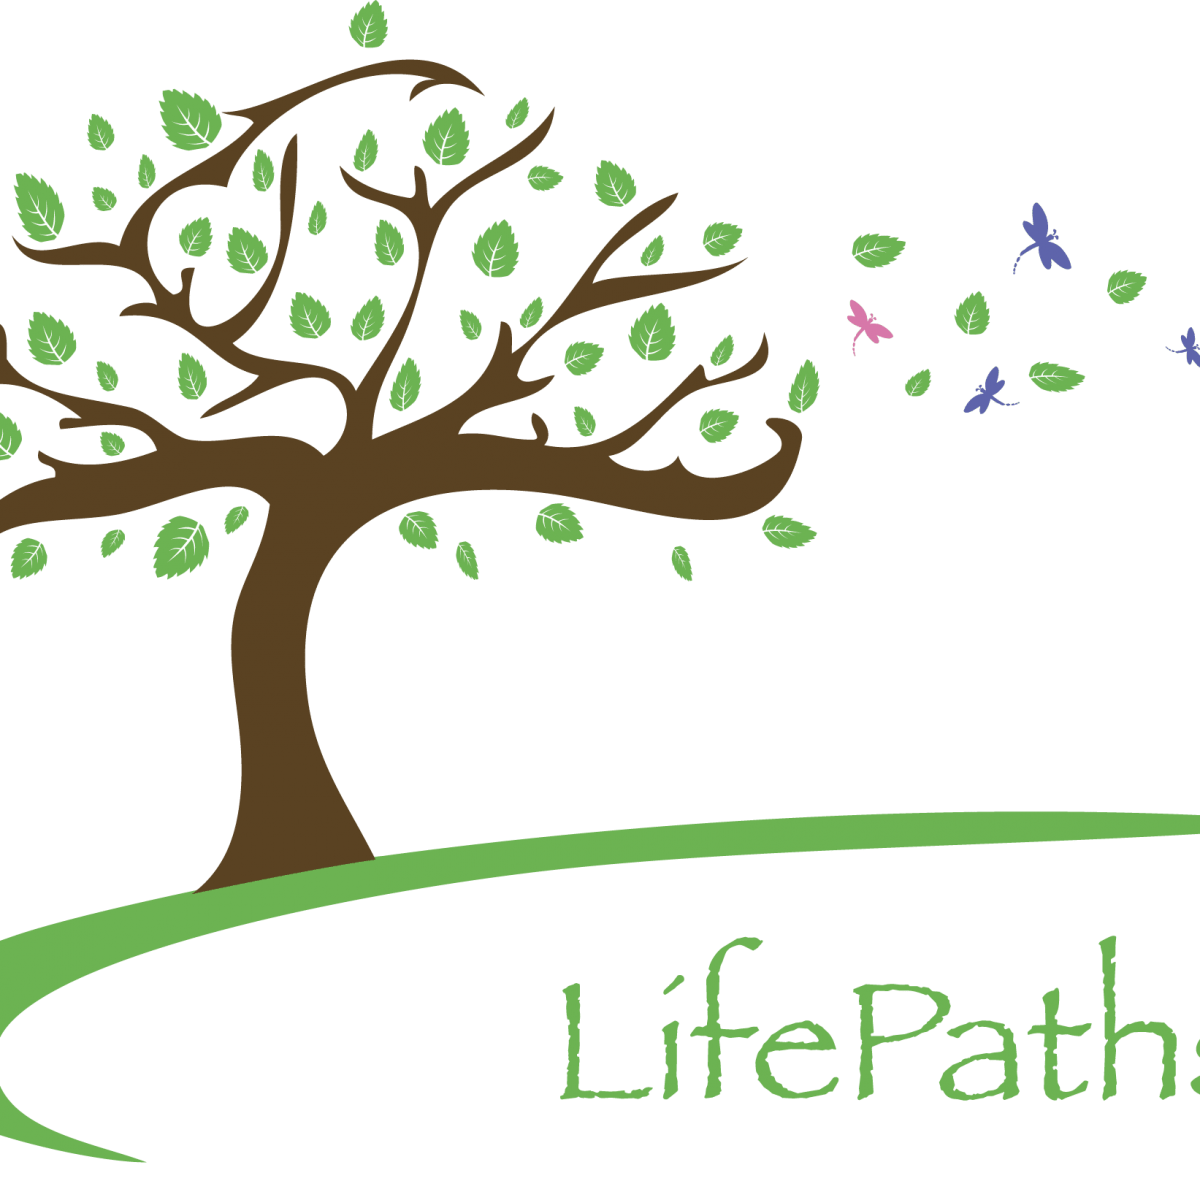 Cw Lifepathscounseling Com Author At Lifepaths Counseling Center